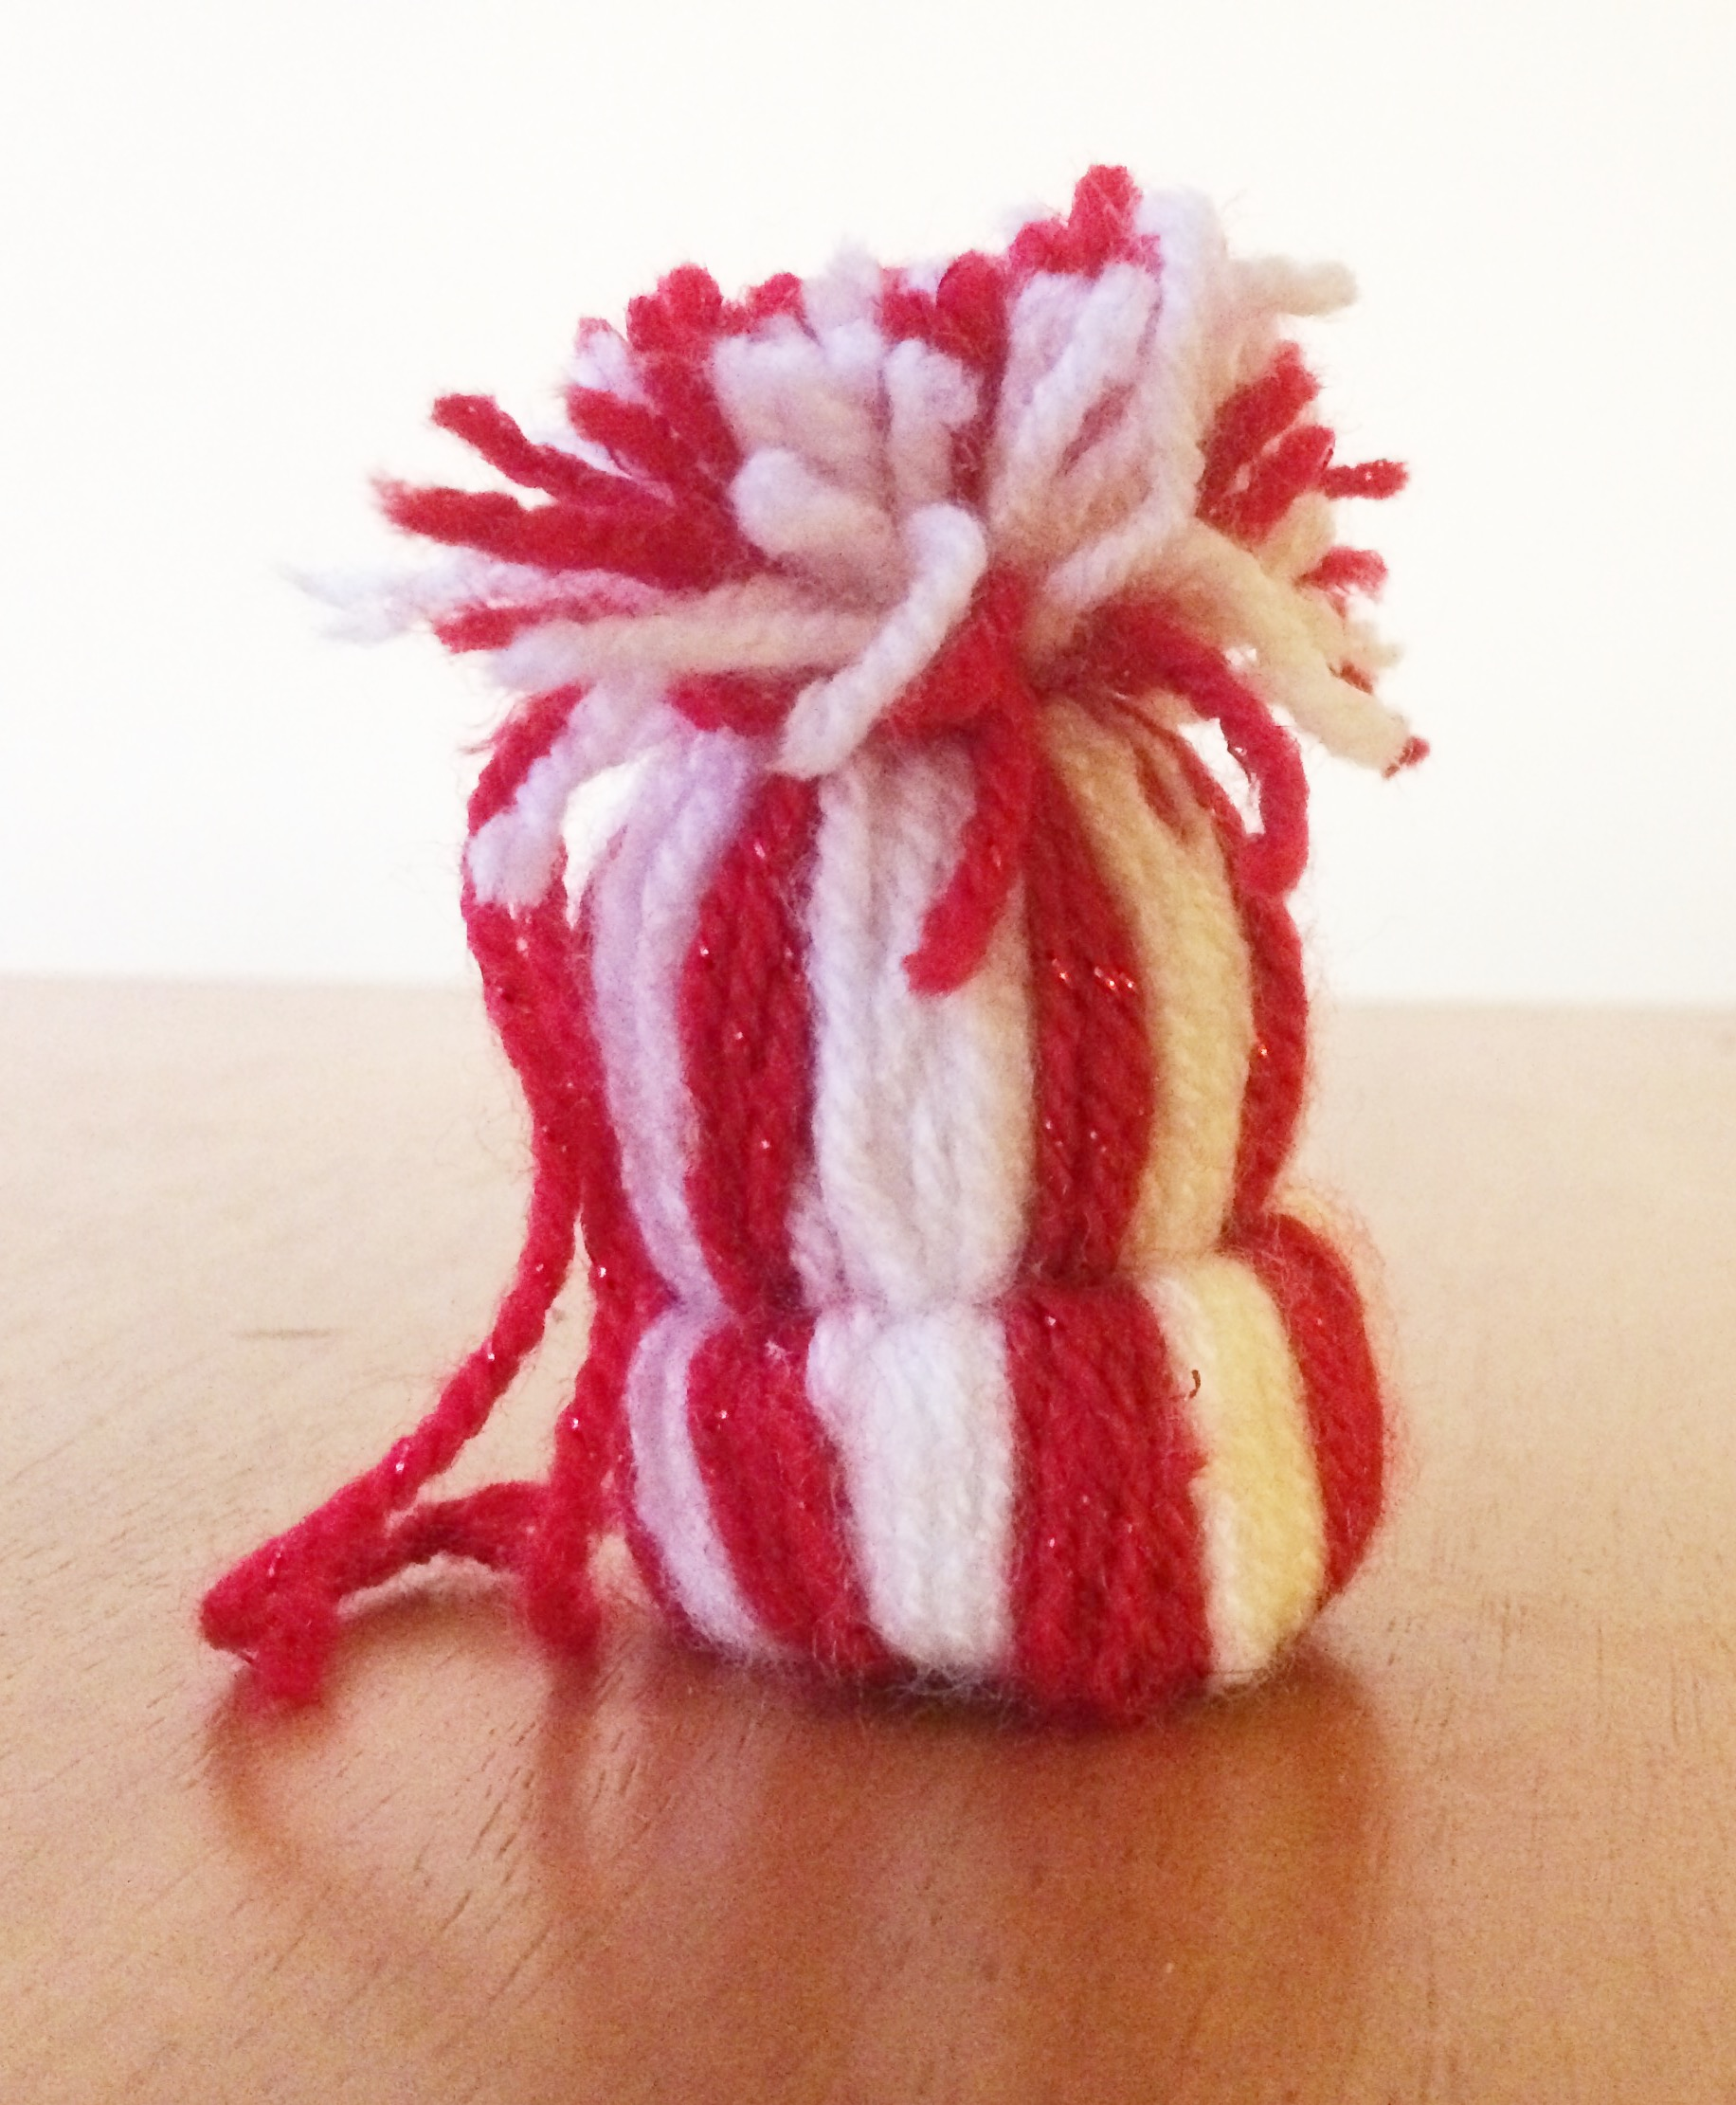 Bauble Woolly Hats for Cats (I mean Christmas Trees!)